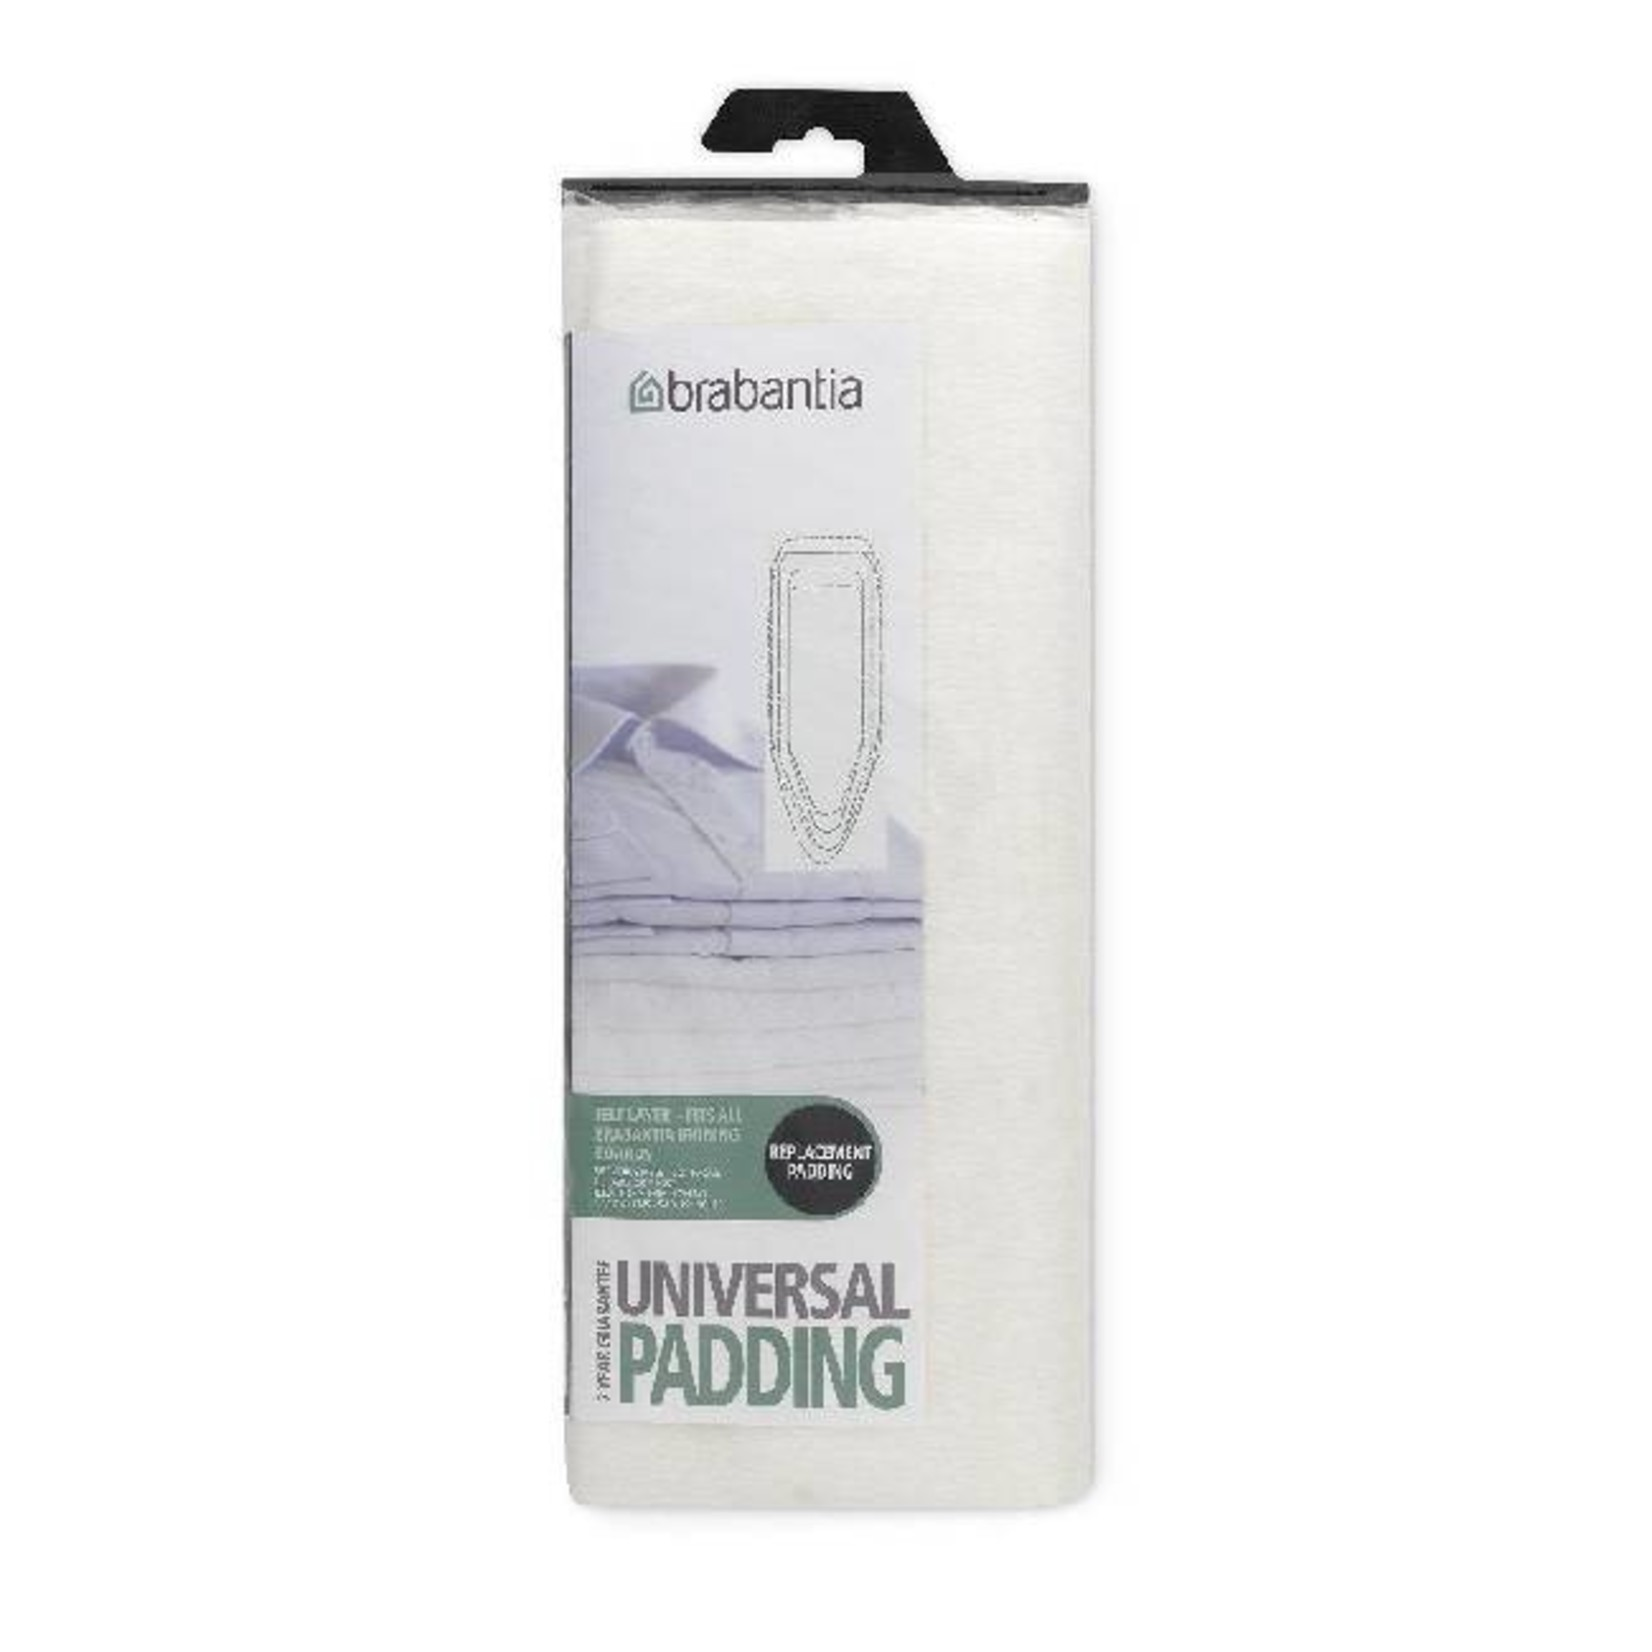 Brabantia BRABANTIA FELT PAD 135 X 49CM UNIVERSAL PADDING FITS ALL ADJUSTABLE